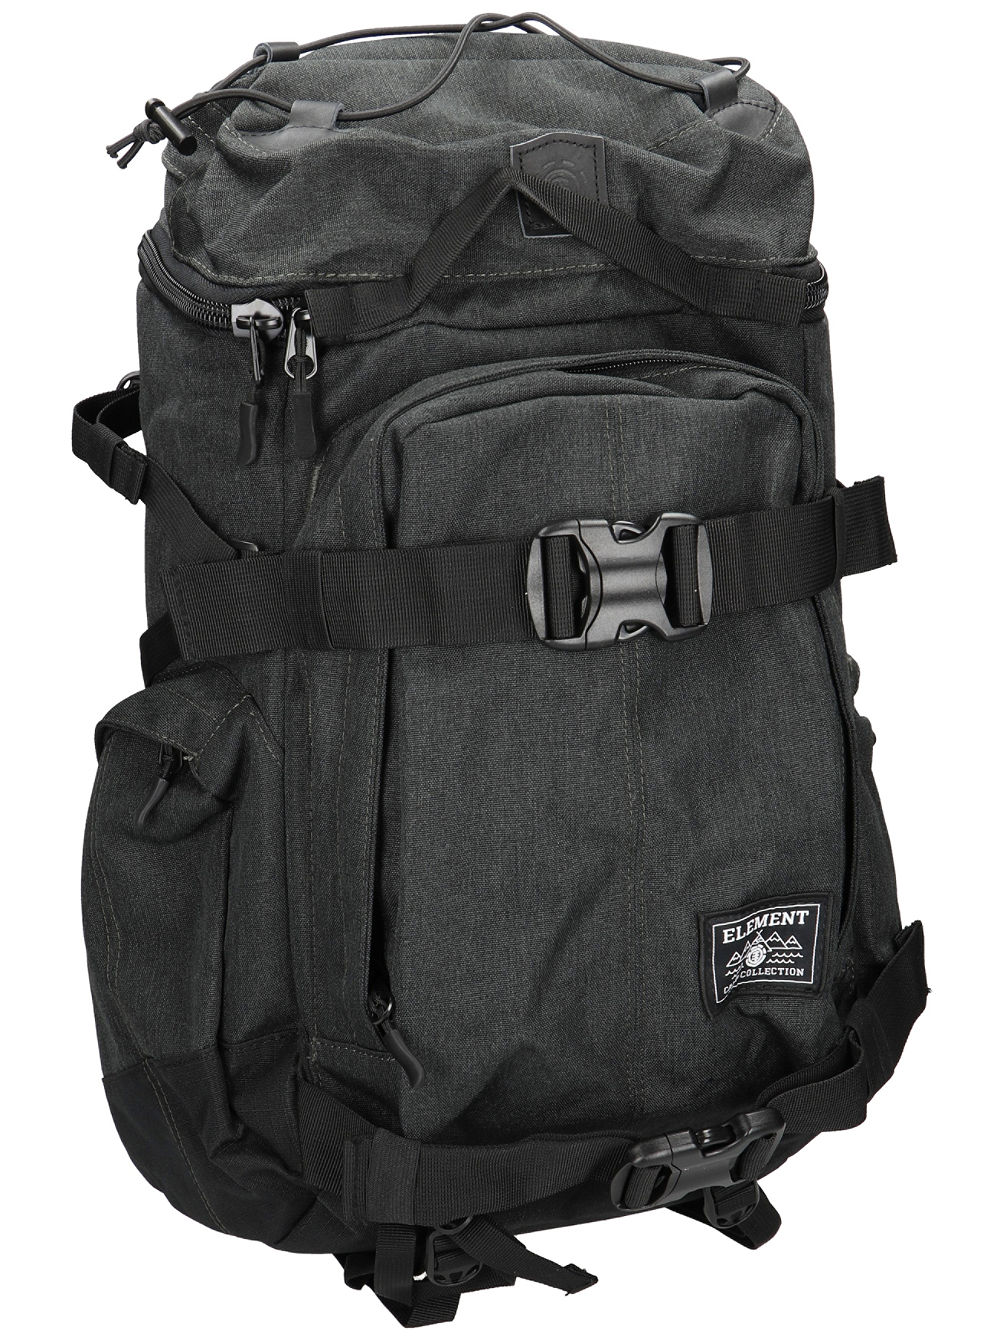 The Explorer Rucksack